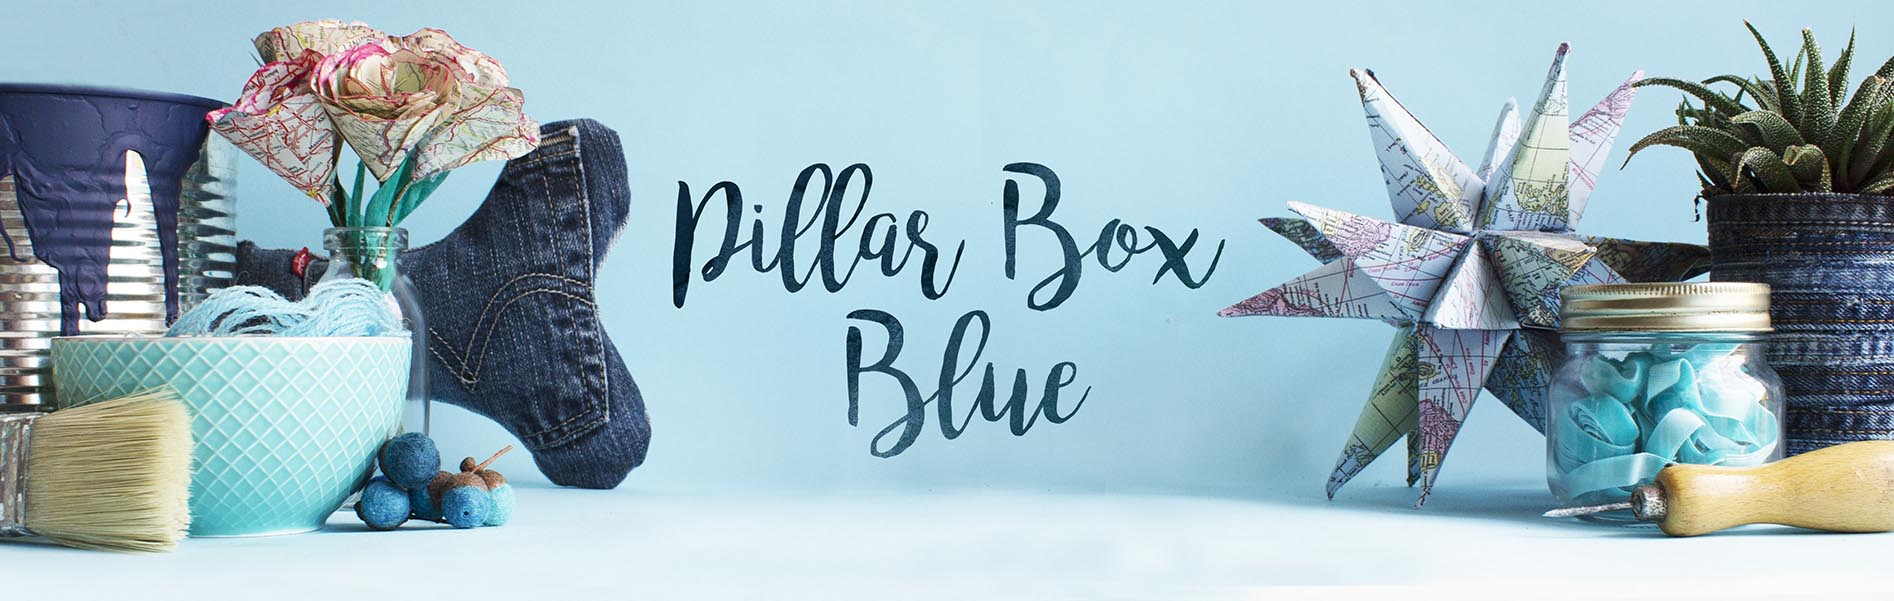 Pillar Box Blue How to Make a